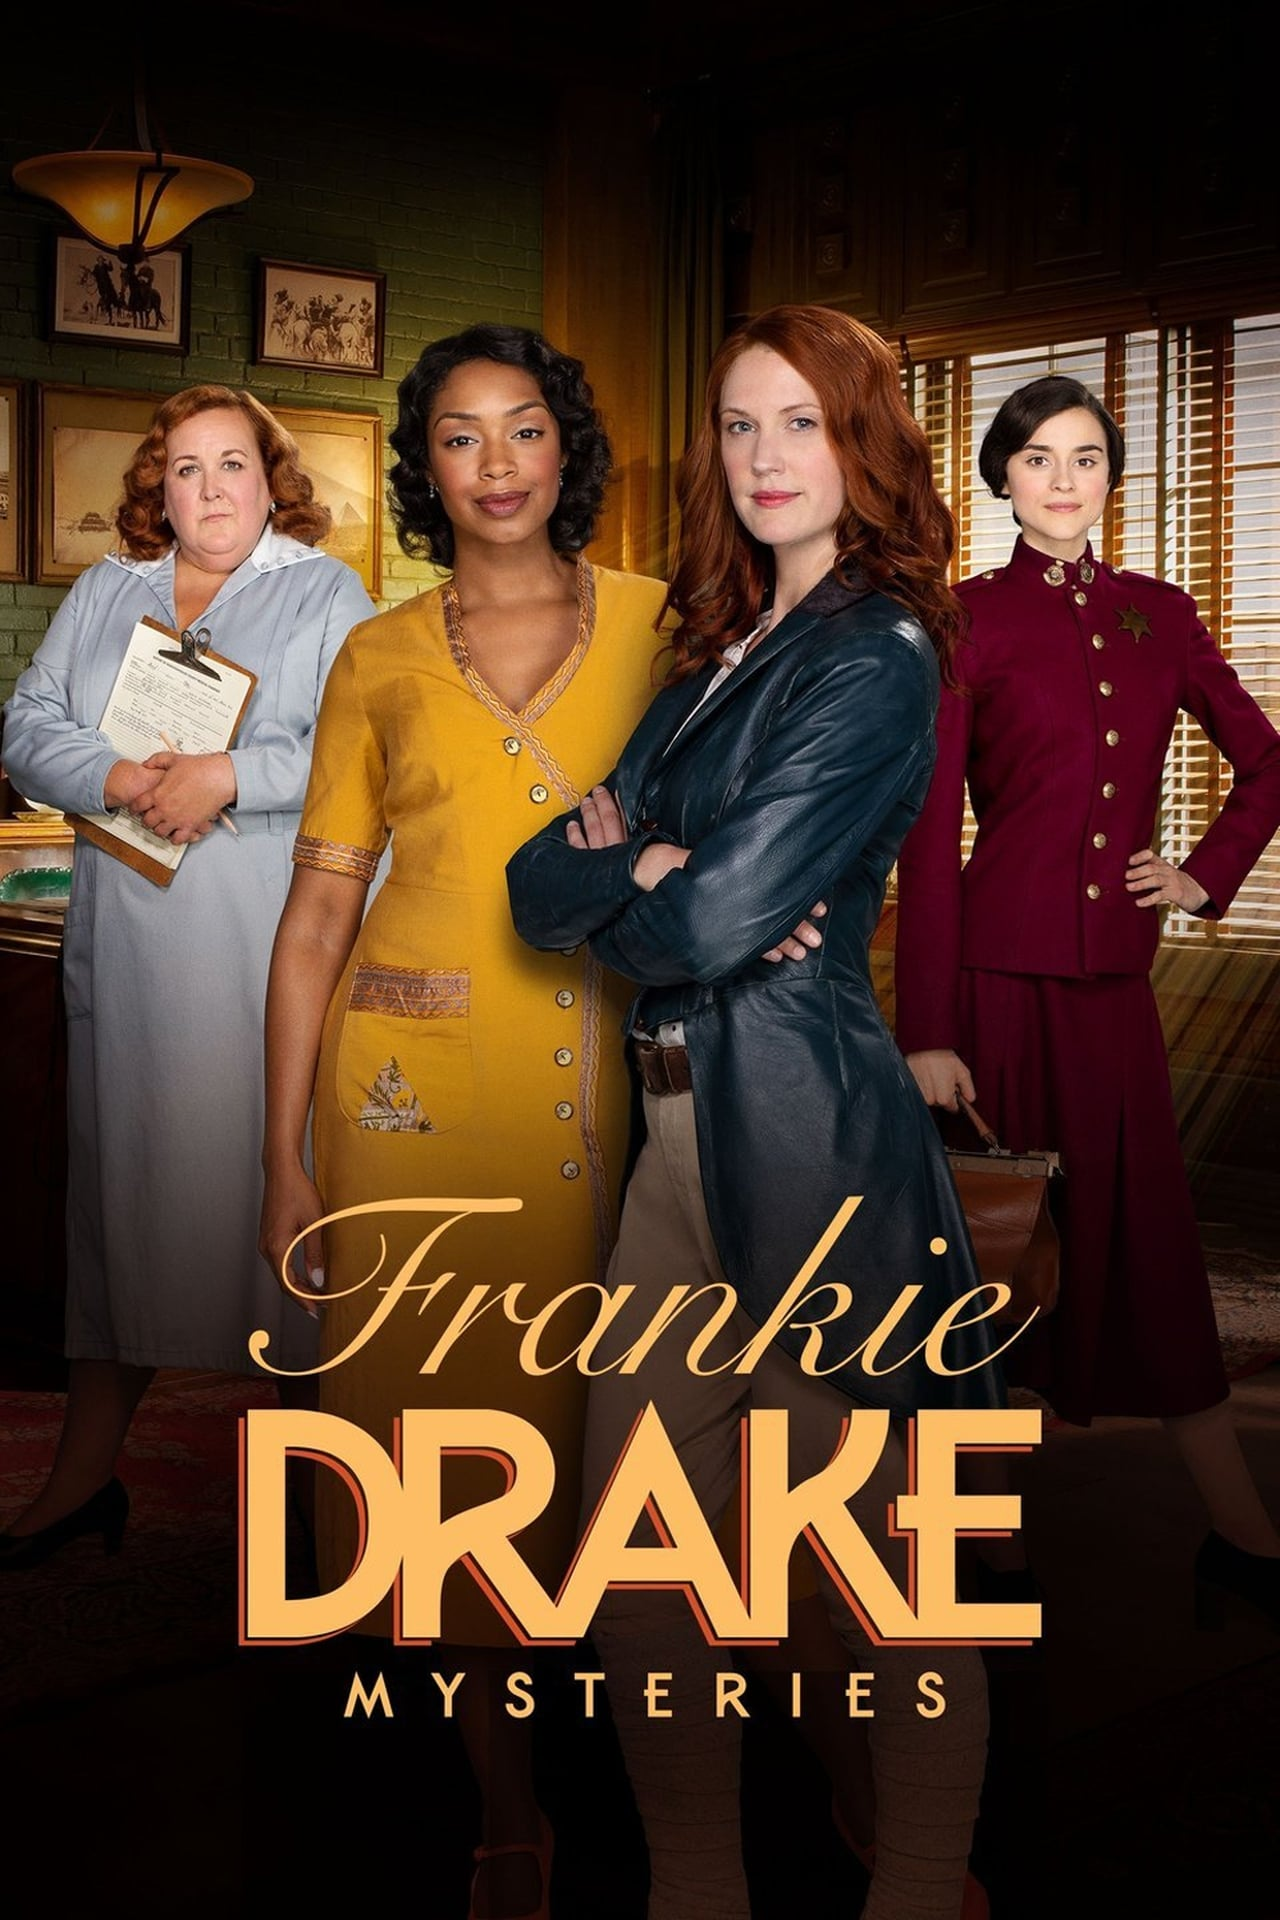 Frankie Drake Mysteries Season 0 (2017) putlockers cafe